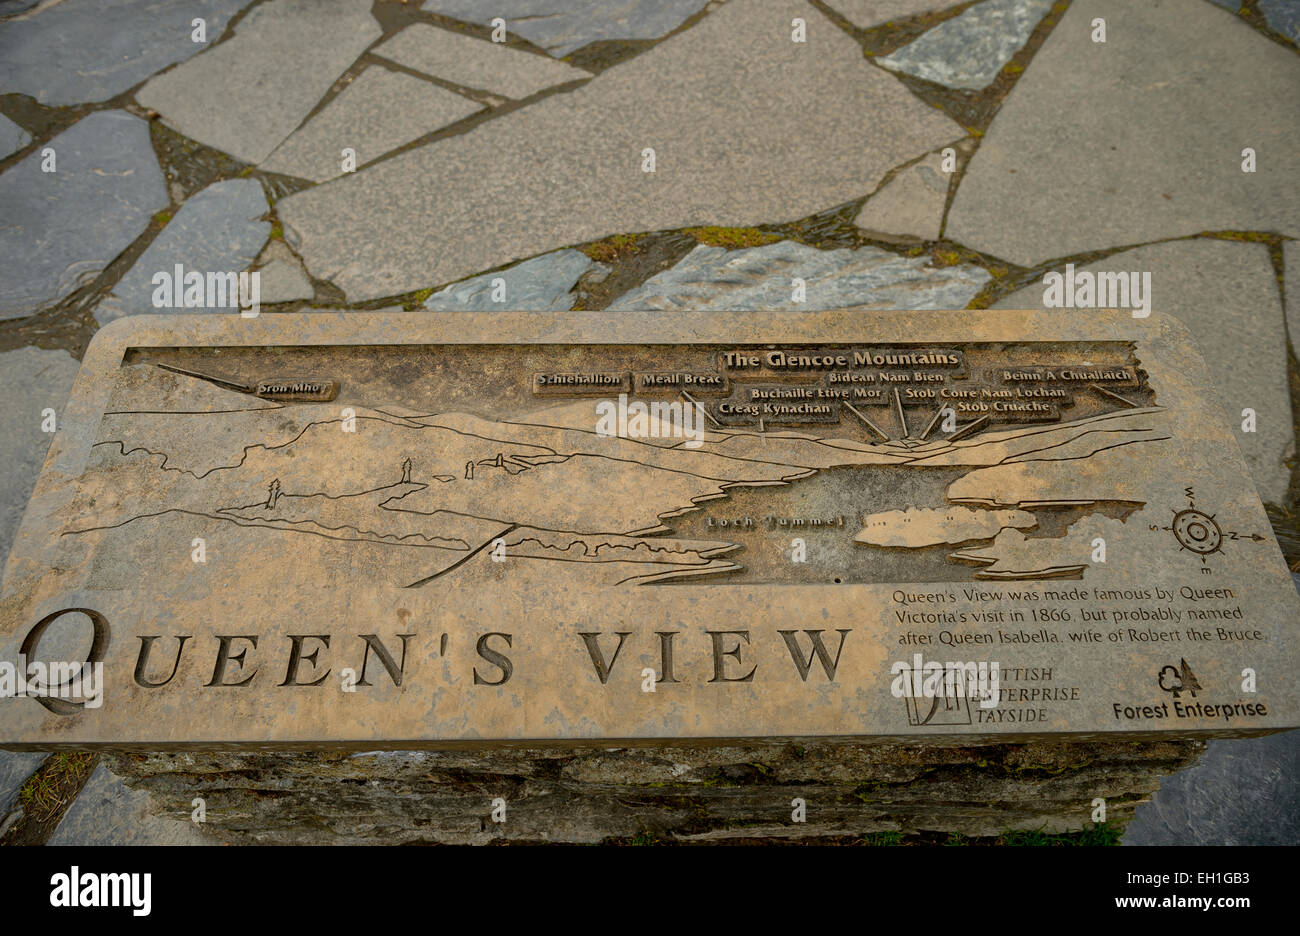 Queen's View orientation diagram on a stone plinth in the Loch Tummel viewing area. - Stock Image